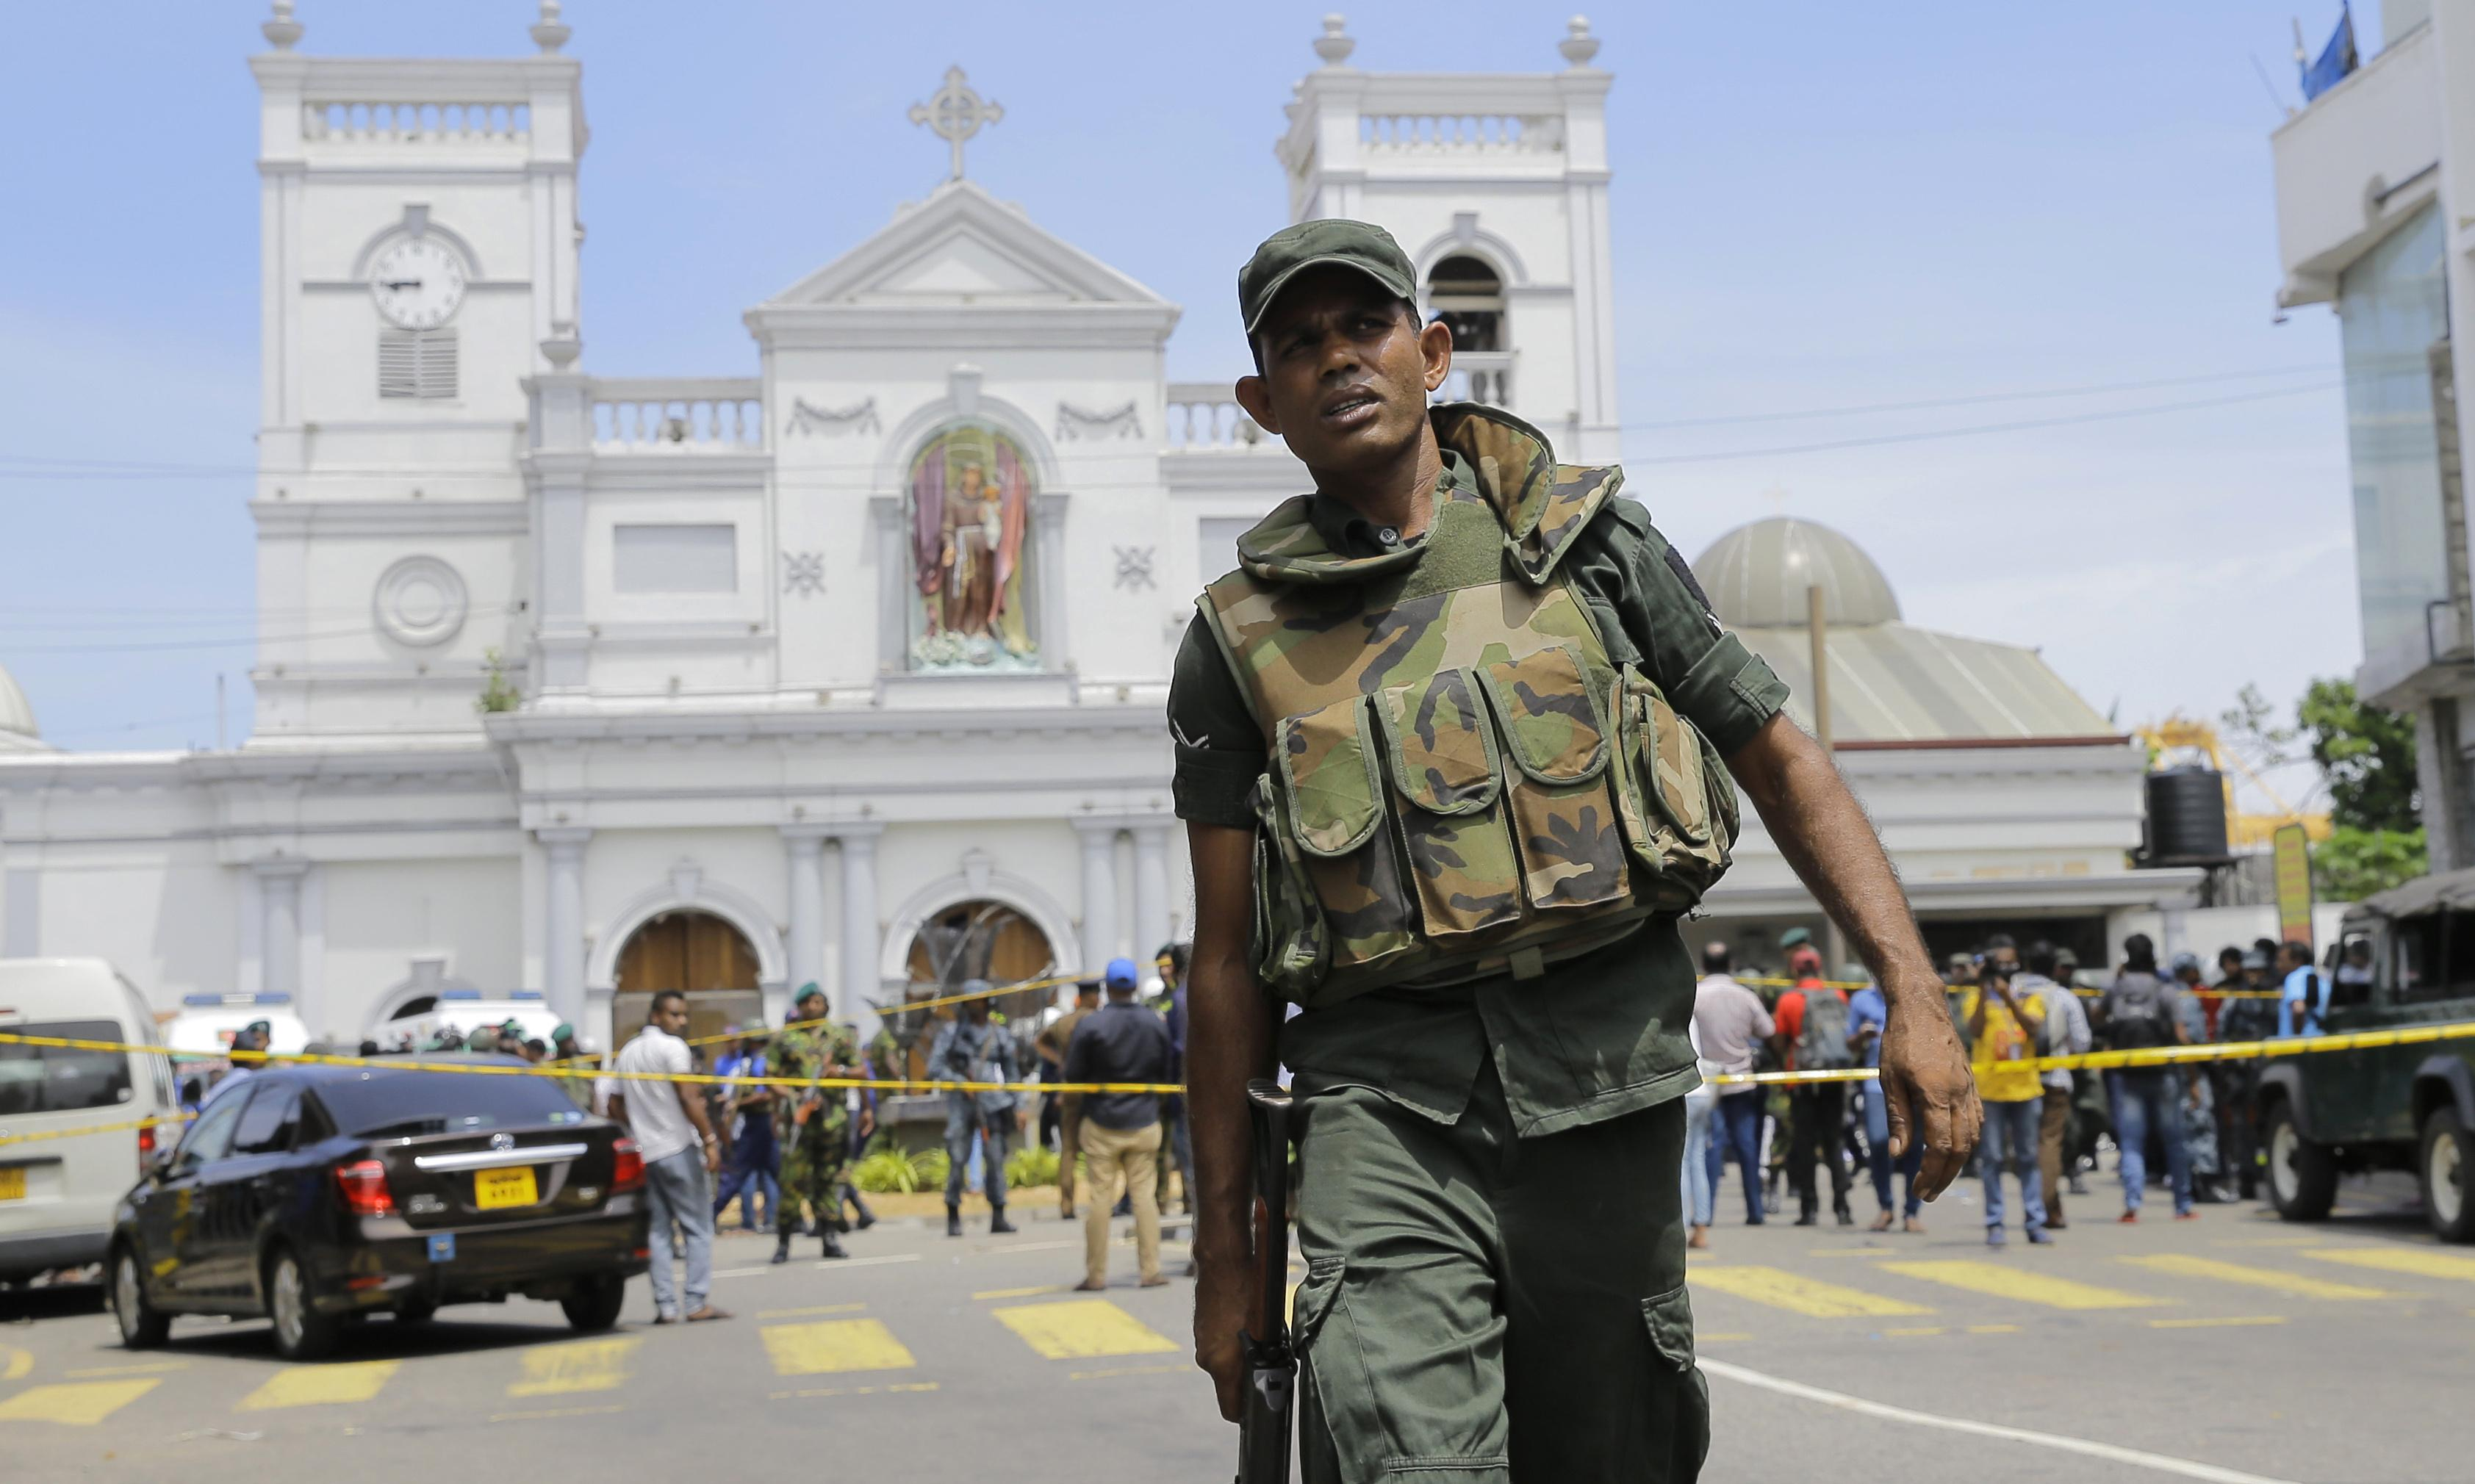 Sri Lanka death toll expected to rise as leaders condemn killings